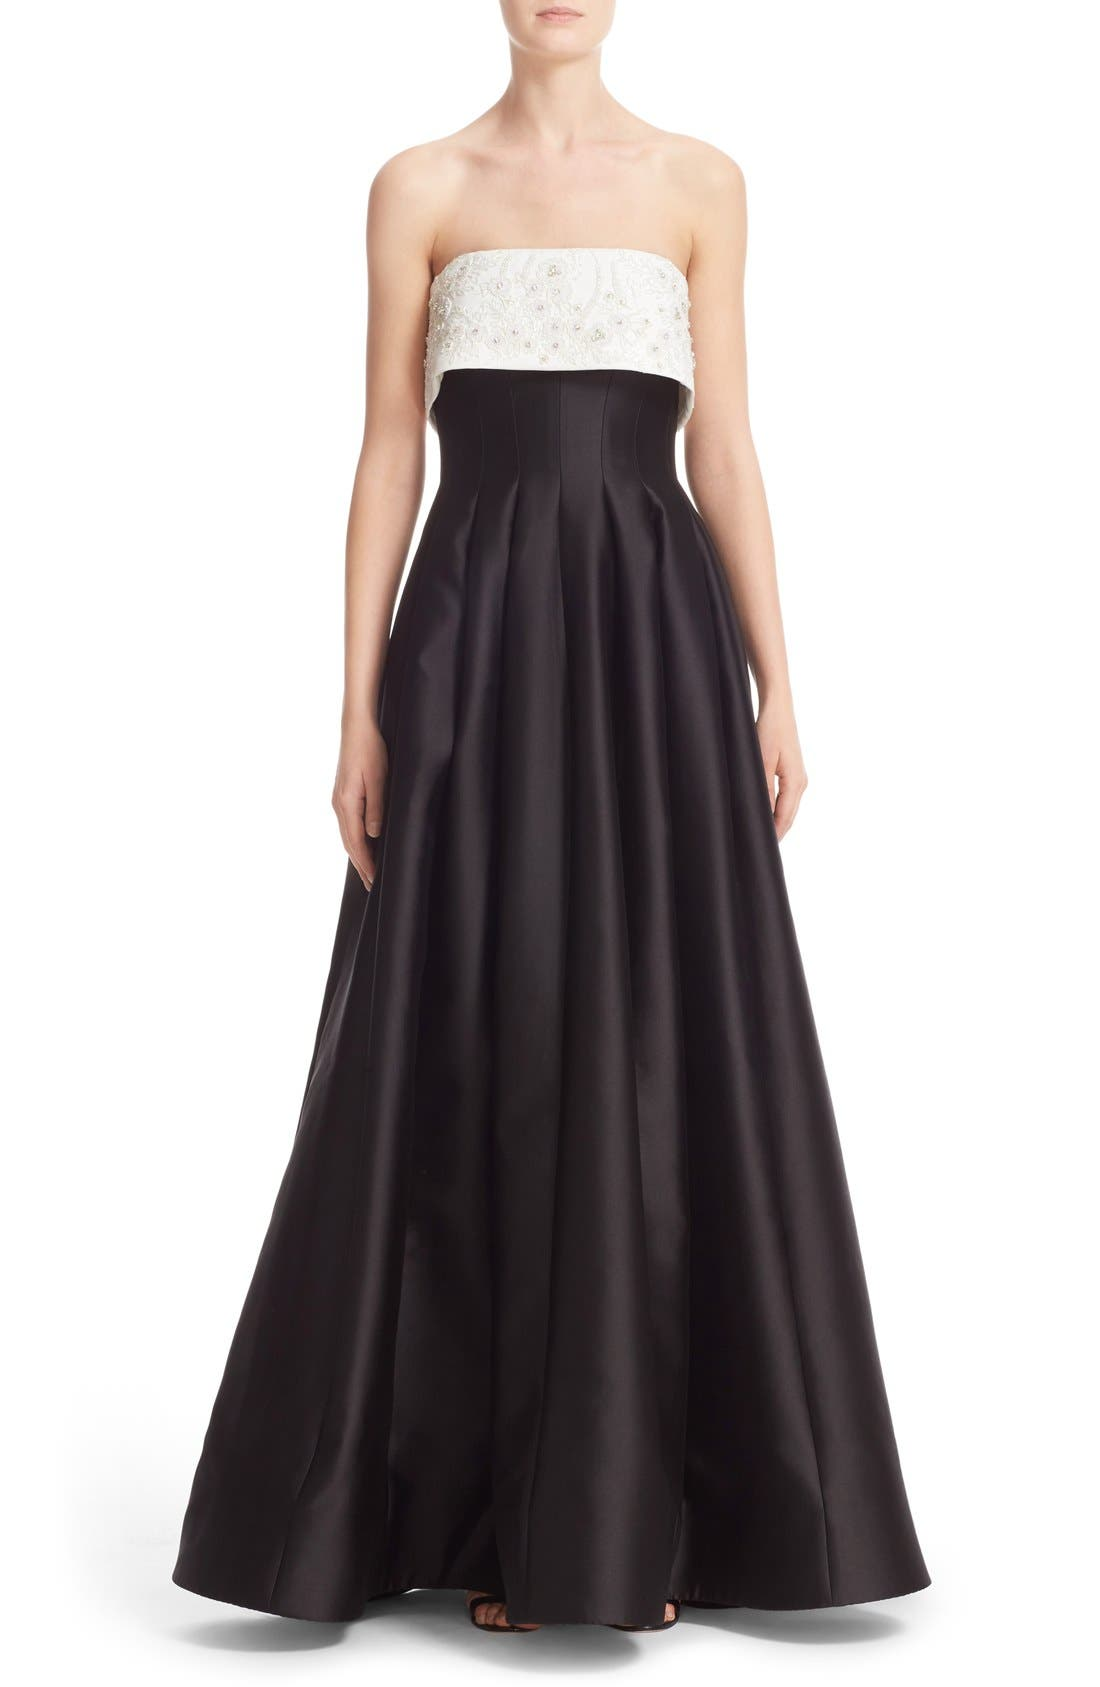 BADGLEY MISCHKA COUTURE. Badgley Mischka Embellished Bodice